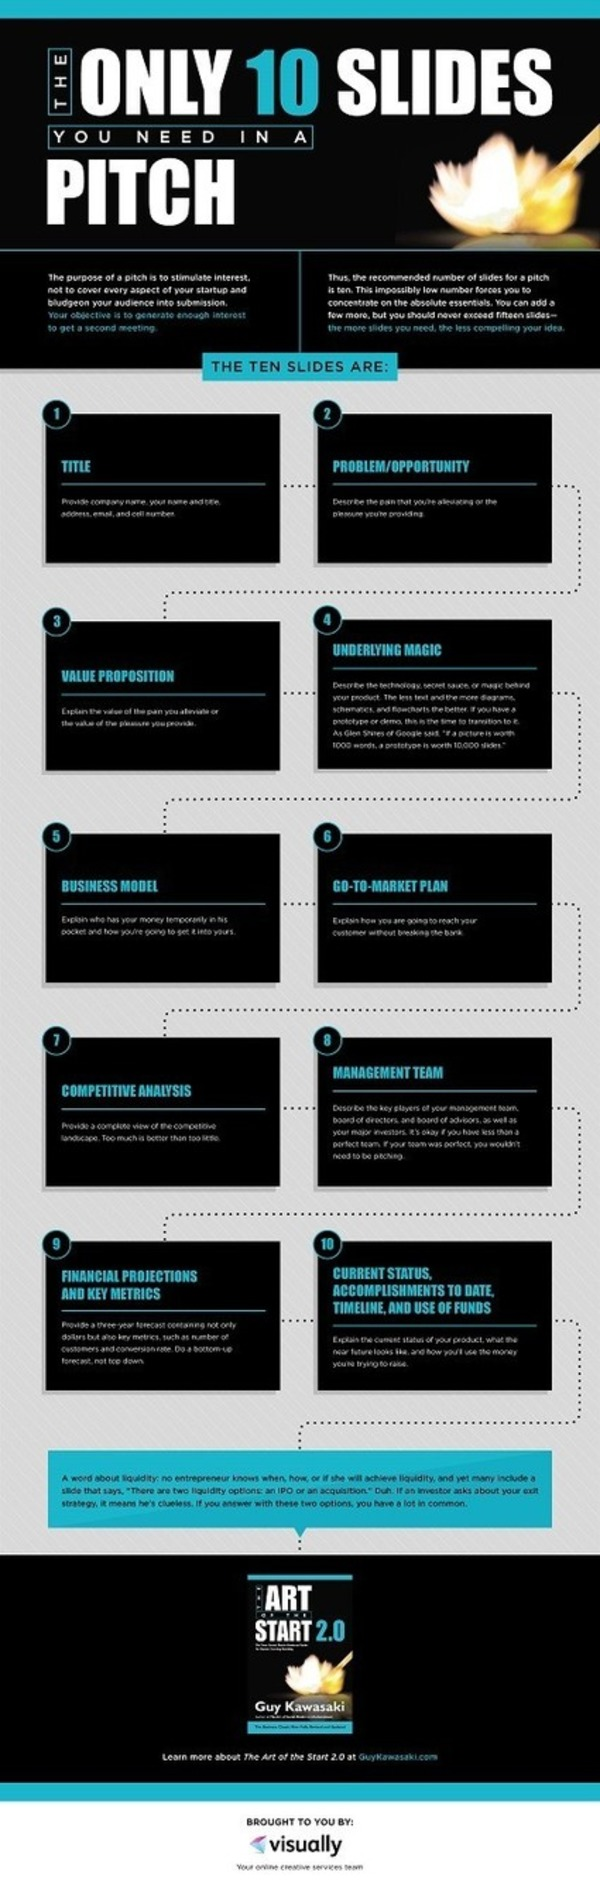 The Only 10 Slides You Need in a Pitch [Infographic] - Profs   The Marketing Technology Alert   Scoop.it